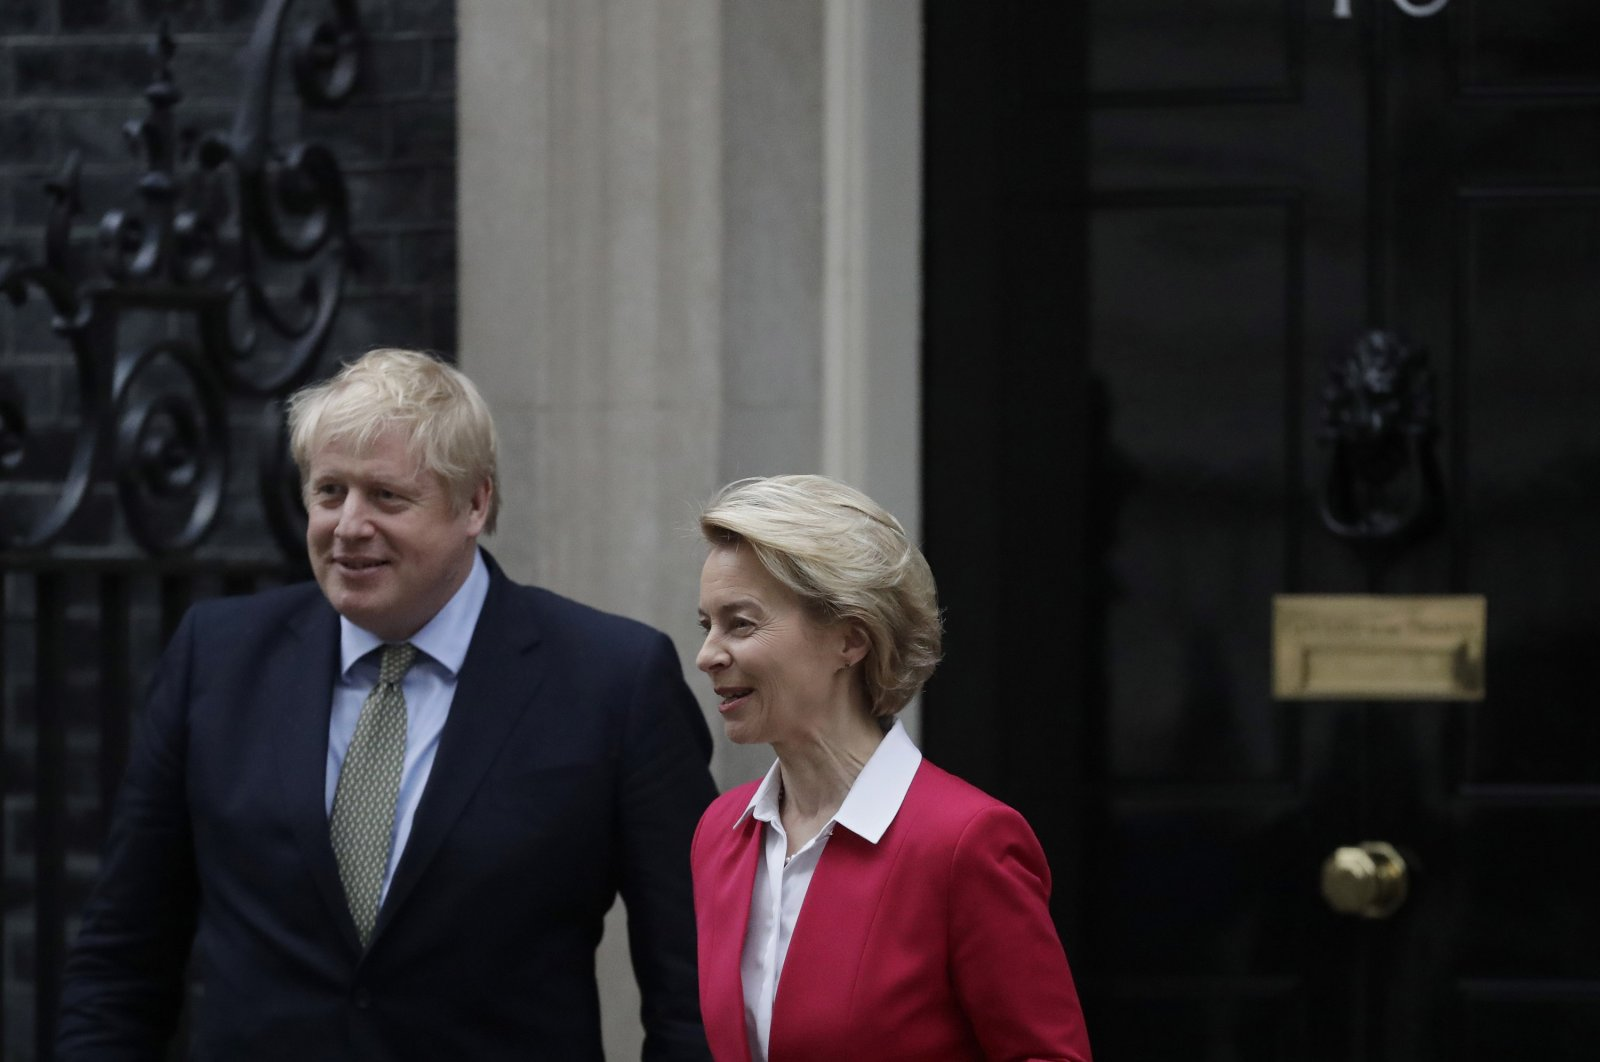 Britain's Prime Minister Boris Johnson greets European Commission President Ursula von der Leyen outside 10 Downing Street in London, Jan. 8, 2020. (AP Photo)